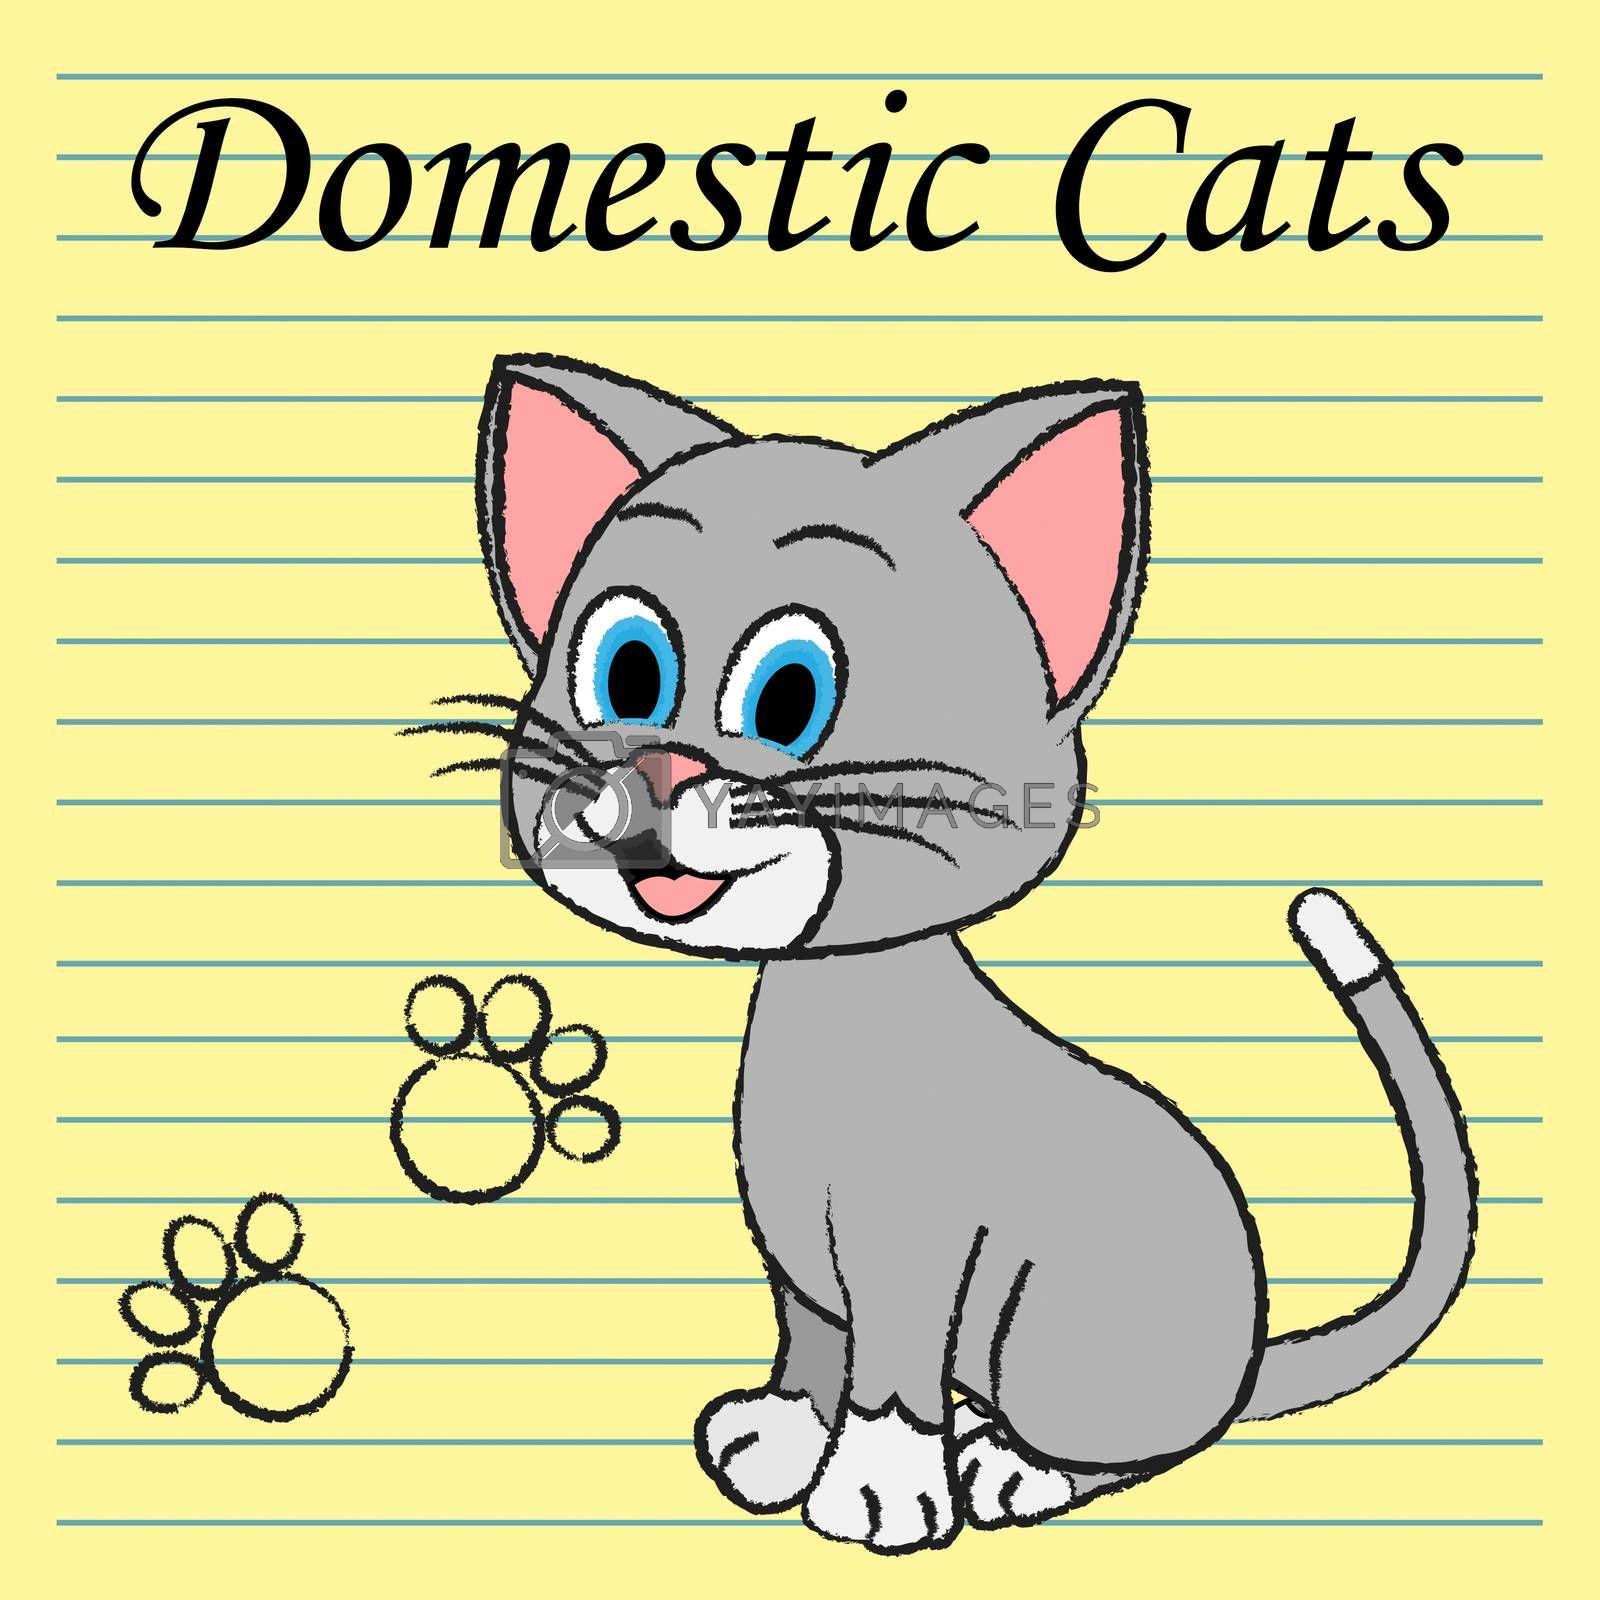 Domestic Cats Representing Family Puss And Feline